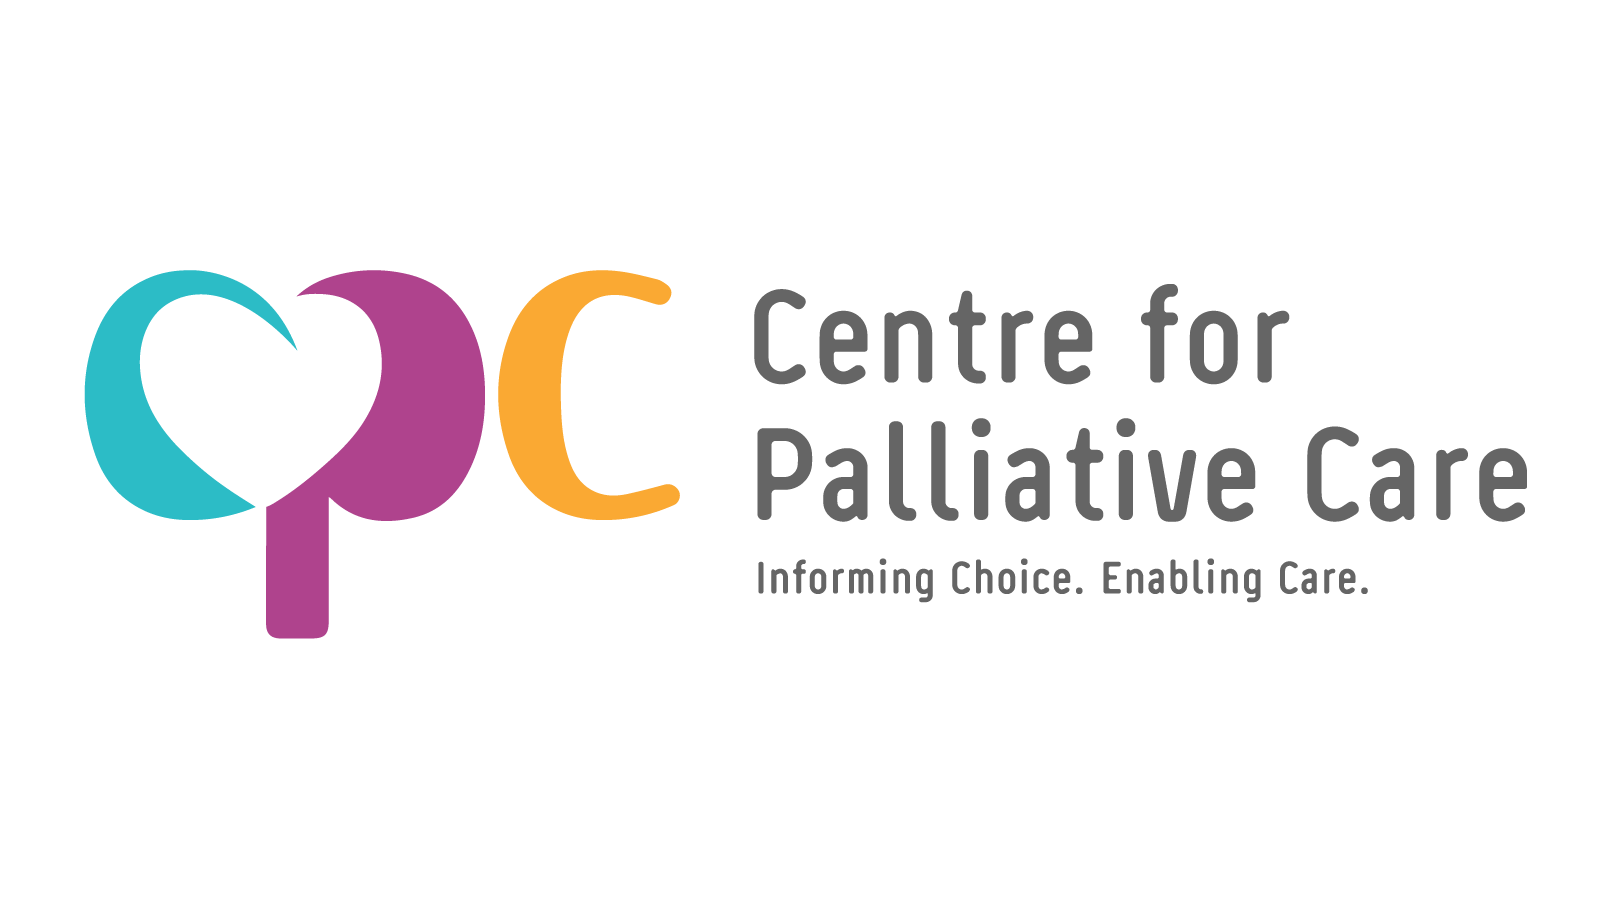 Center for Palliative Care